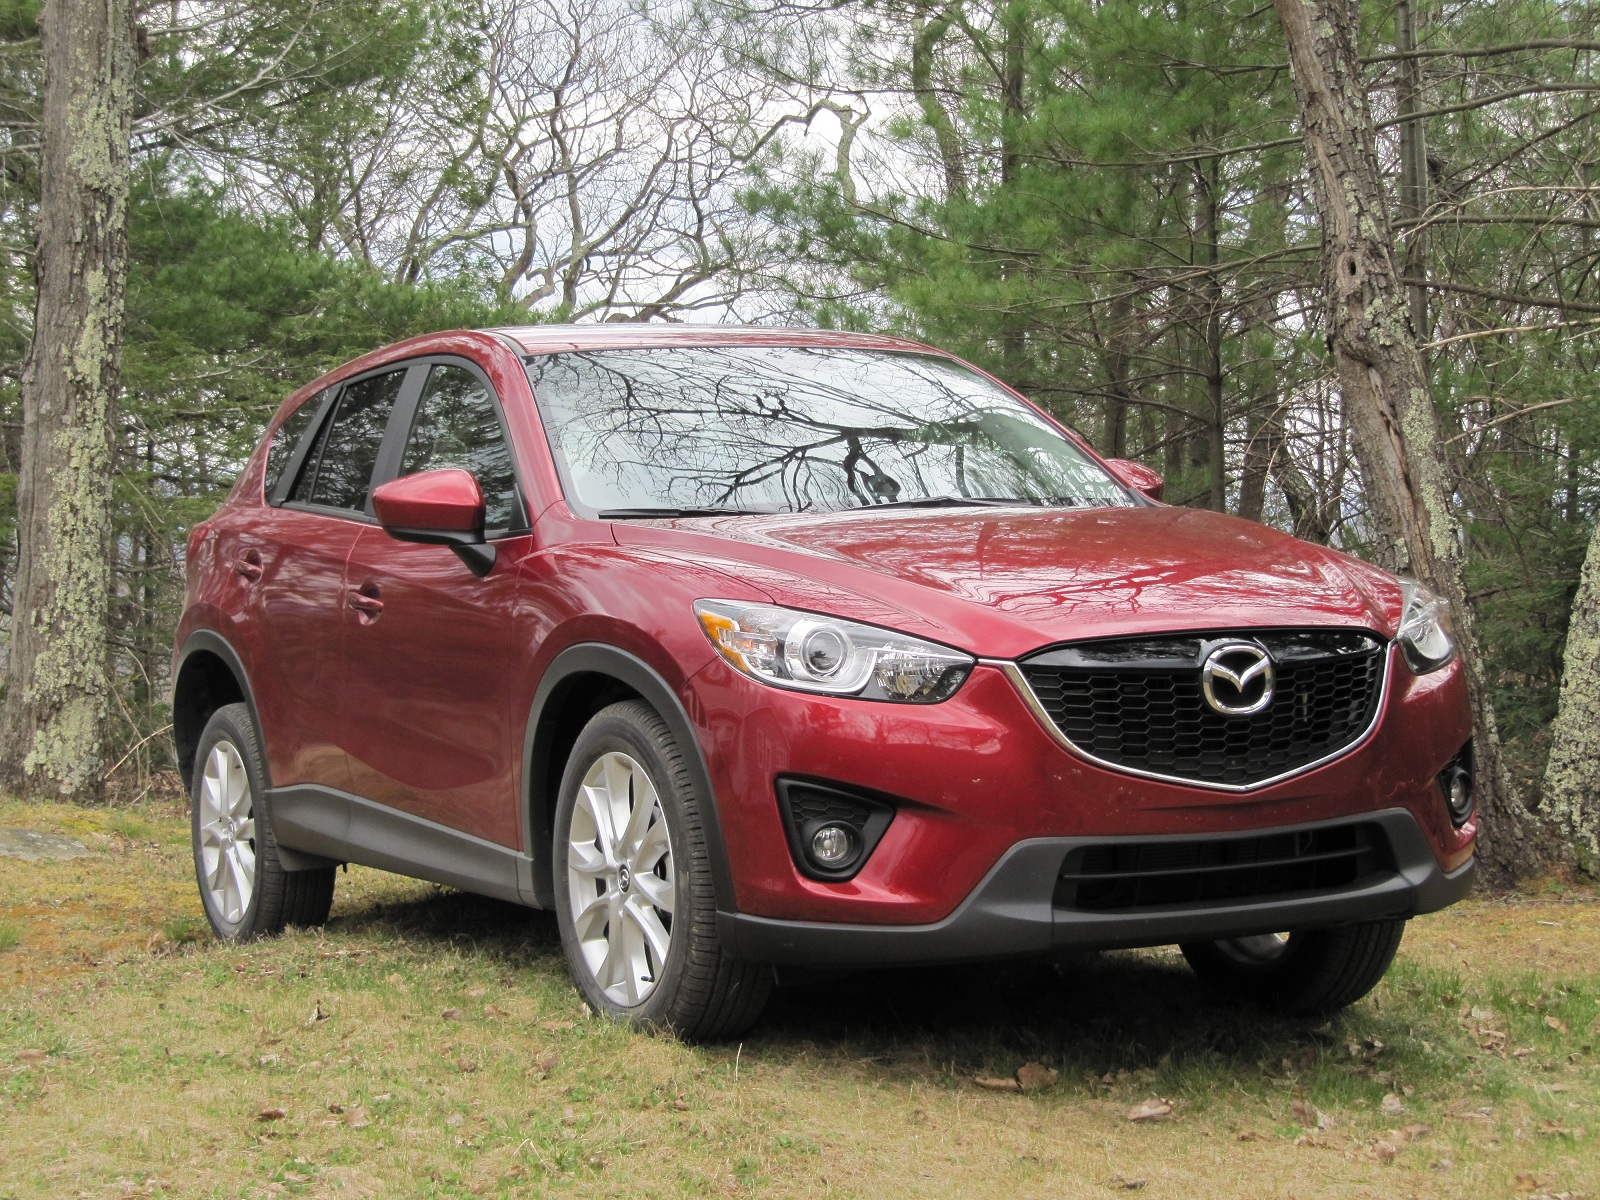 2013 Mazda Cx 5 Styling Review The Car Connection